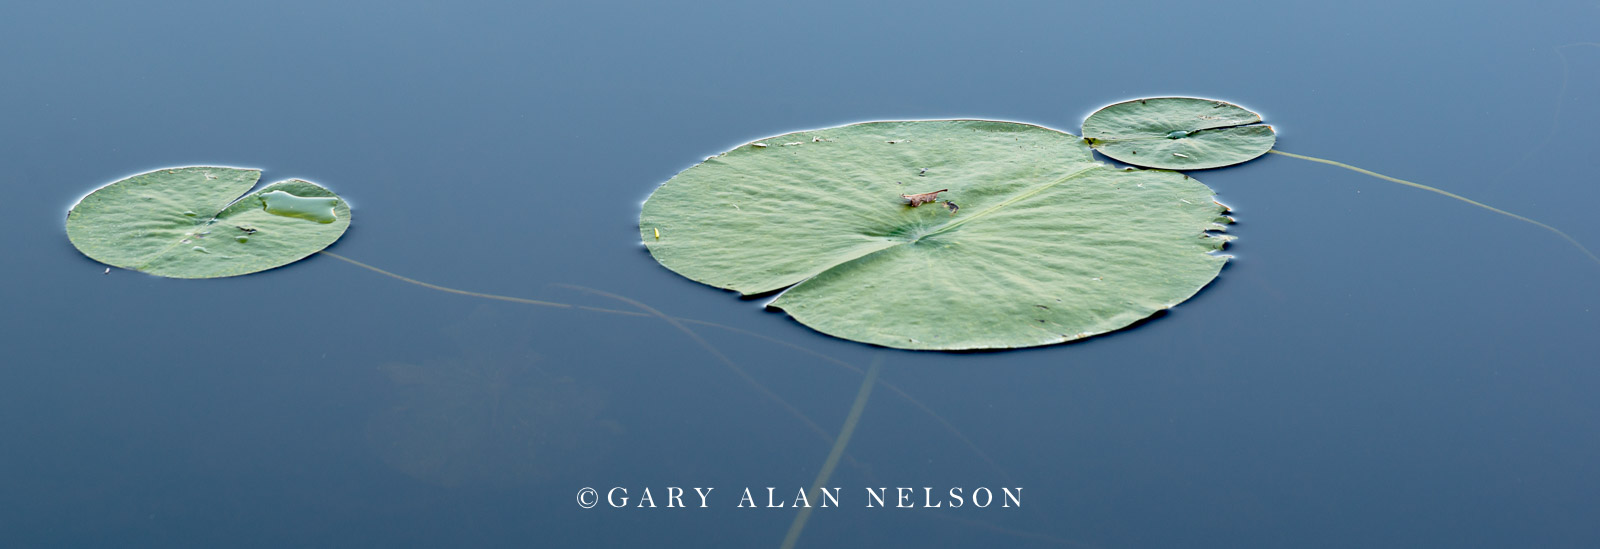 Allemansratt, blue, calm, green, lily pads, reflections, water, photo